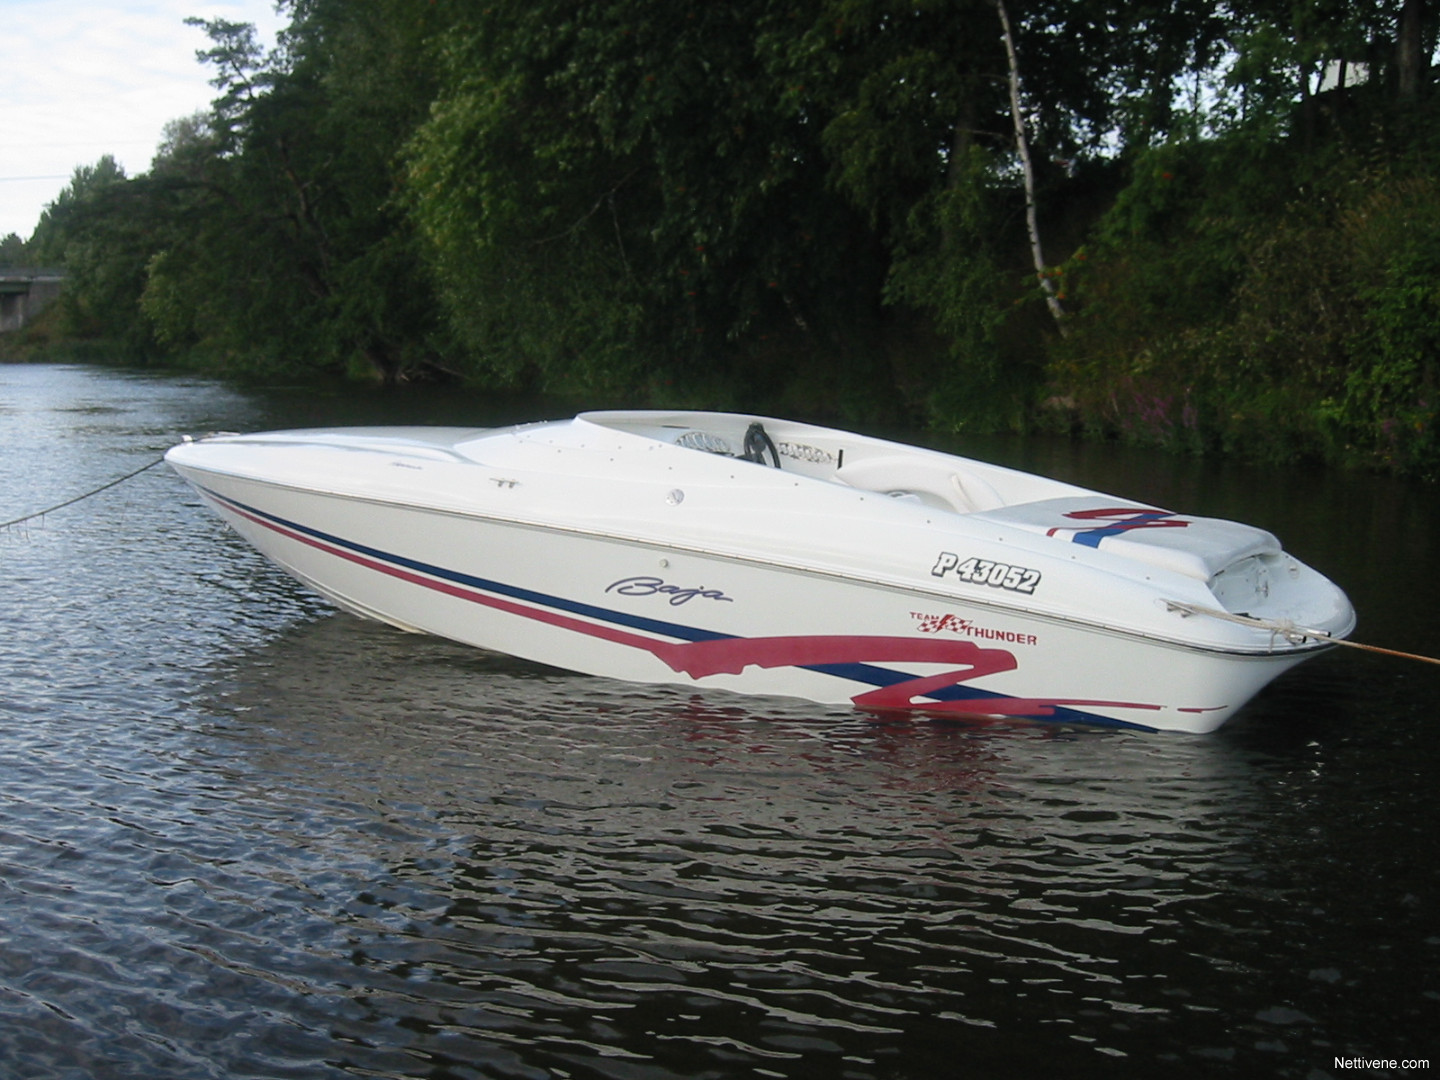 motor boat remote control with 658164 on 544040 Flats Boat Ranger 184 Ghost 2011 A besides Elvira Adult Medium in addition Inflatable Boat Sd230 in addition 26x7 5x9cm Orange Plastic Electric Remote Control Kid Chirdren Toy Speed Boat P 1104283 in addition China Motorized Bed Electric Actuator Linear DC 12V Or 24V Wireless Remote Control Linear Actuator.